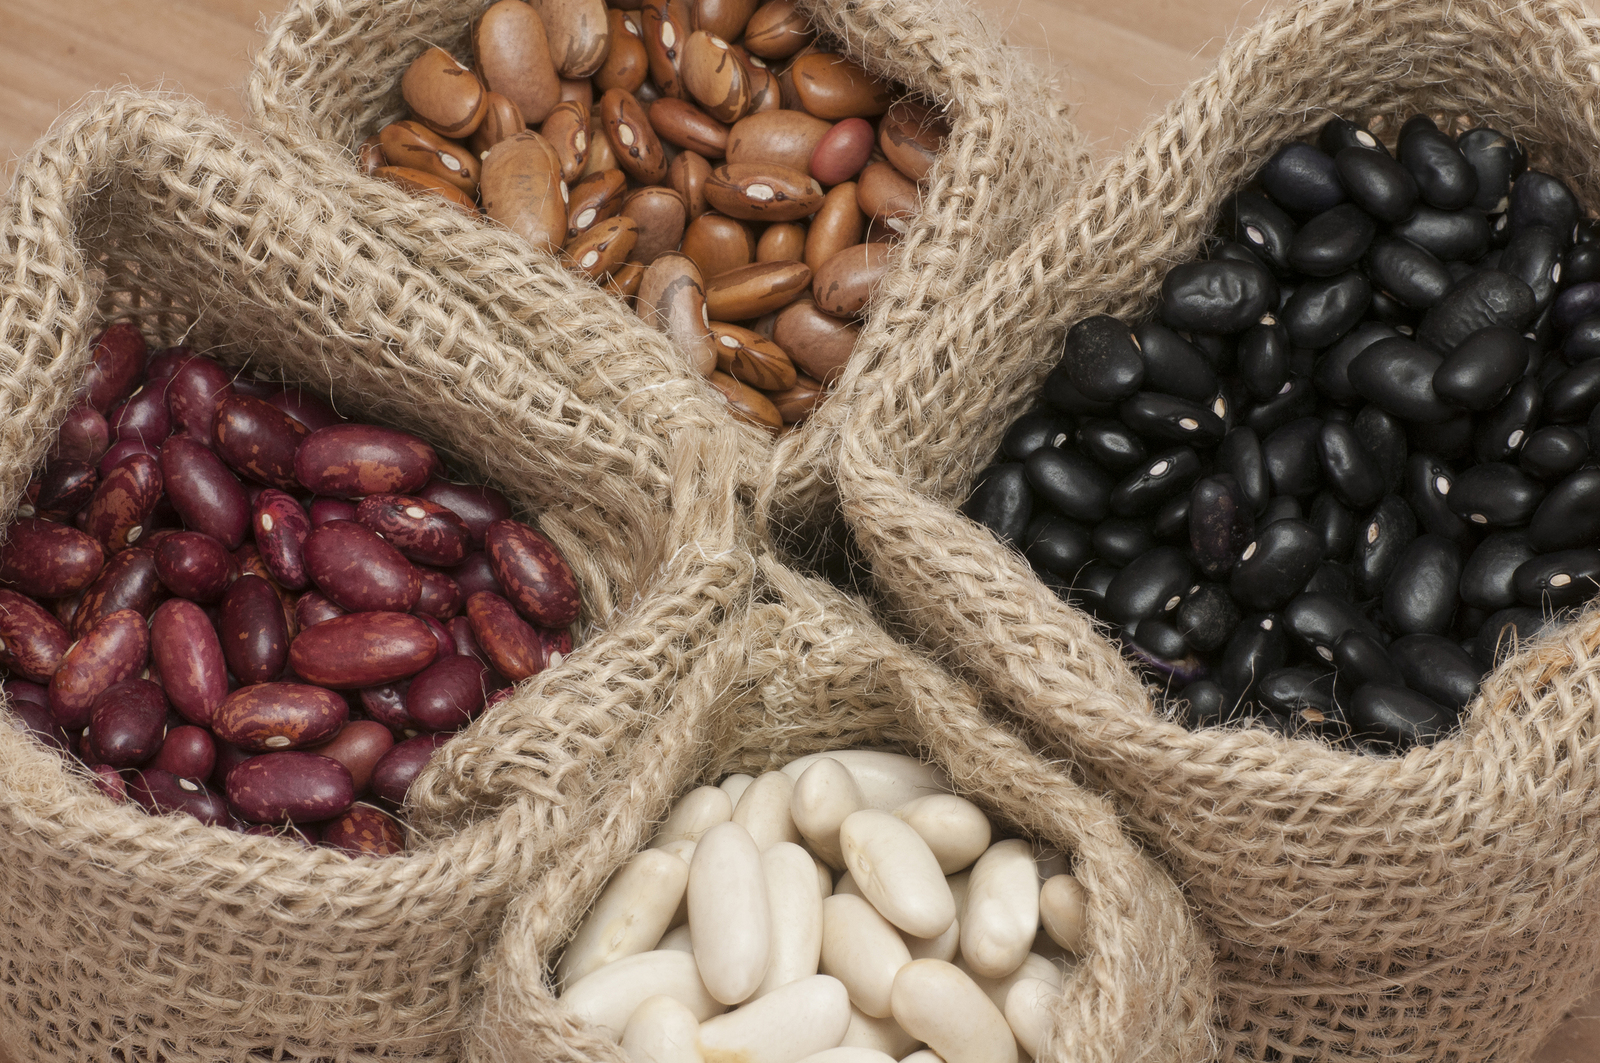 White Beans Kidney Beans Pinto Beans And Black Beans